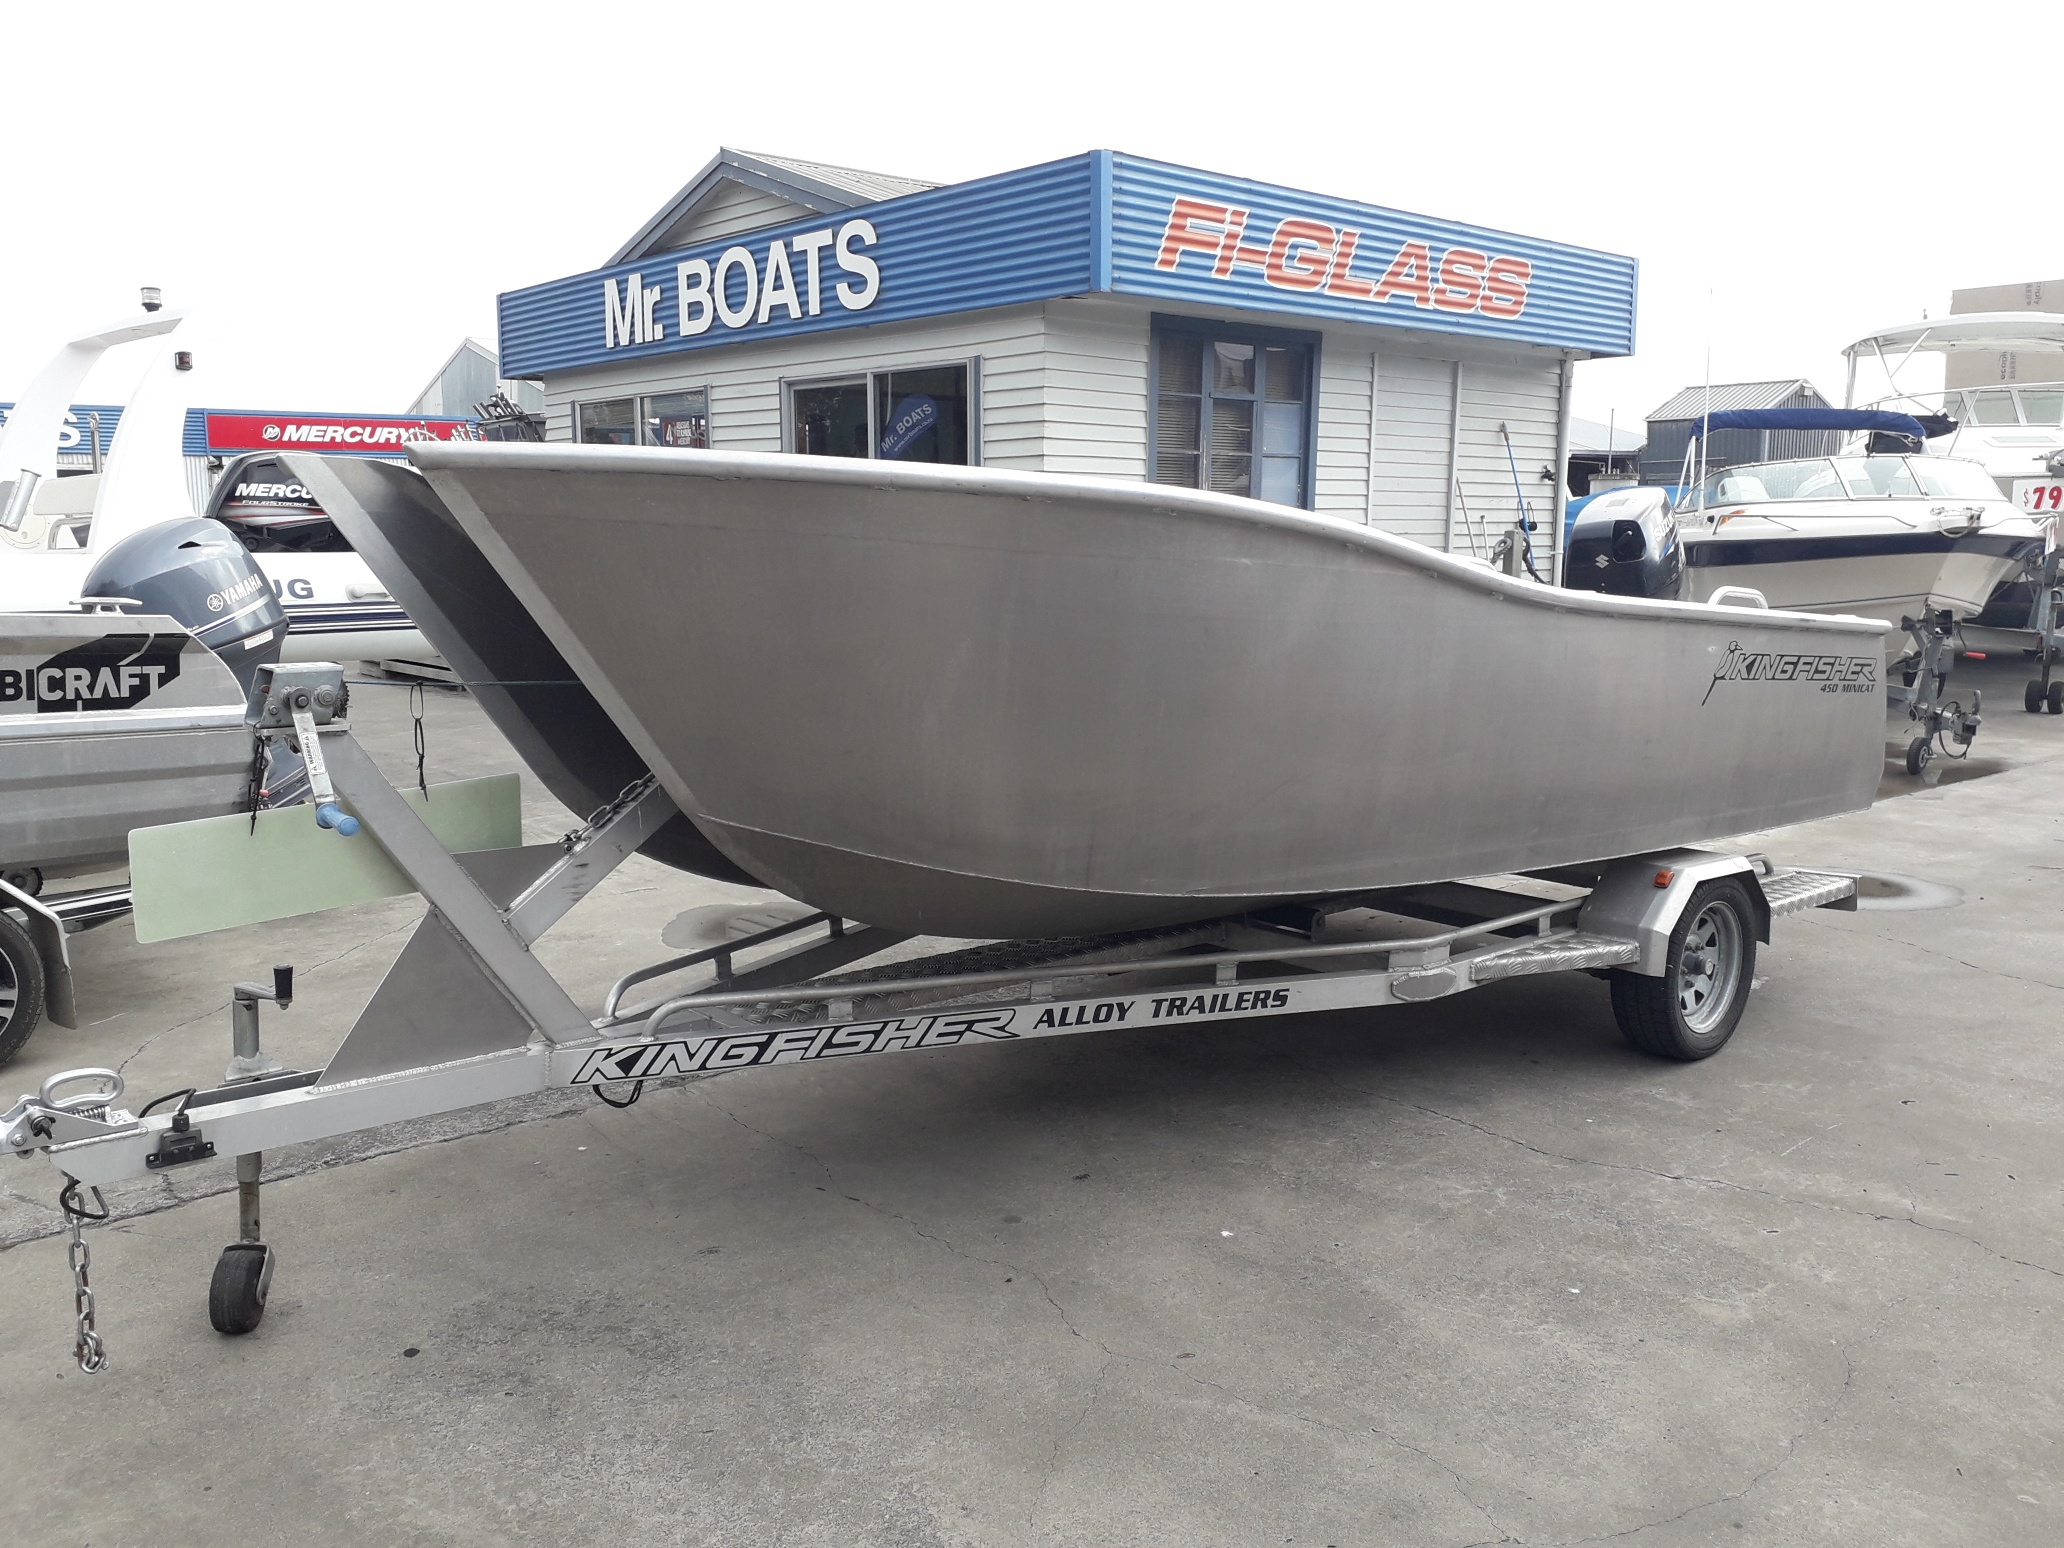 Kingfisher 450 MiniCat- One Owner